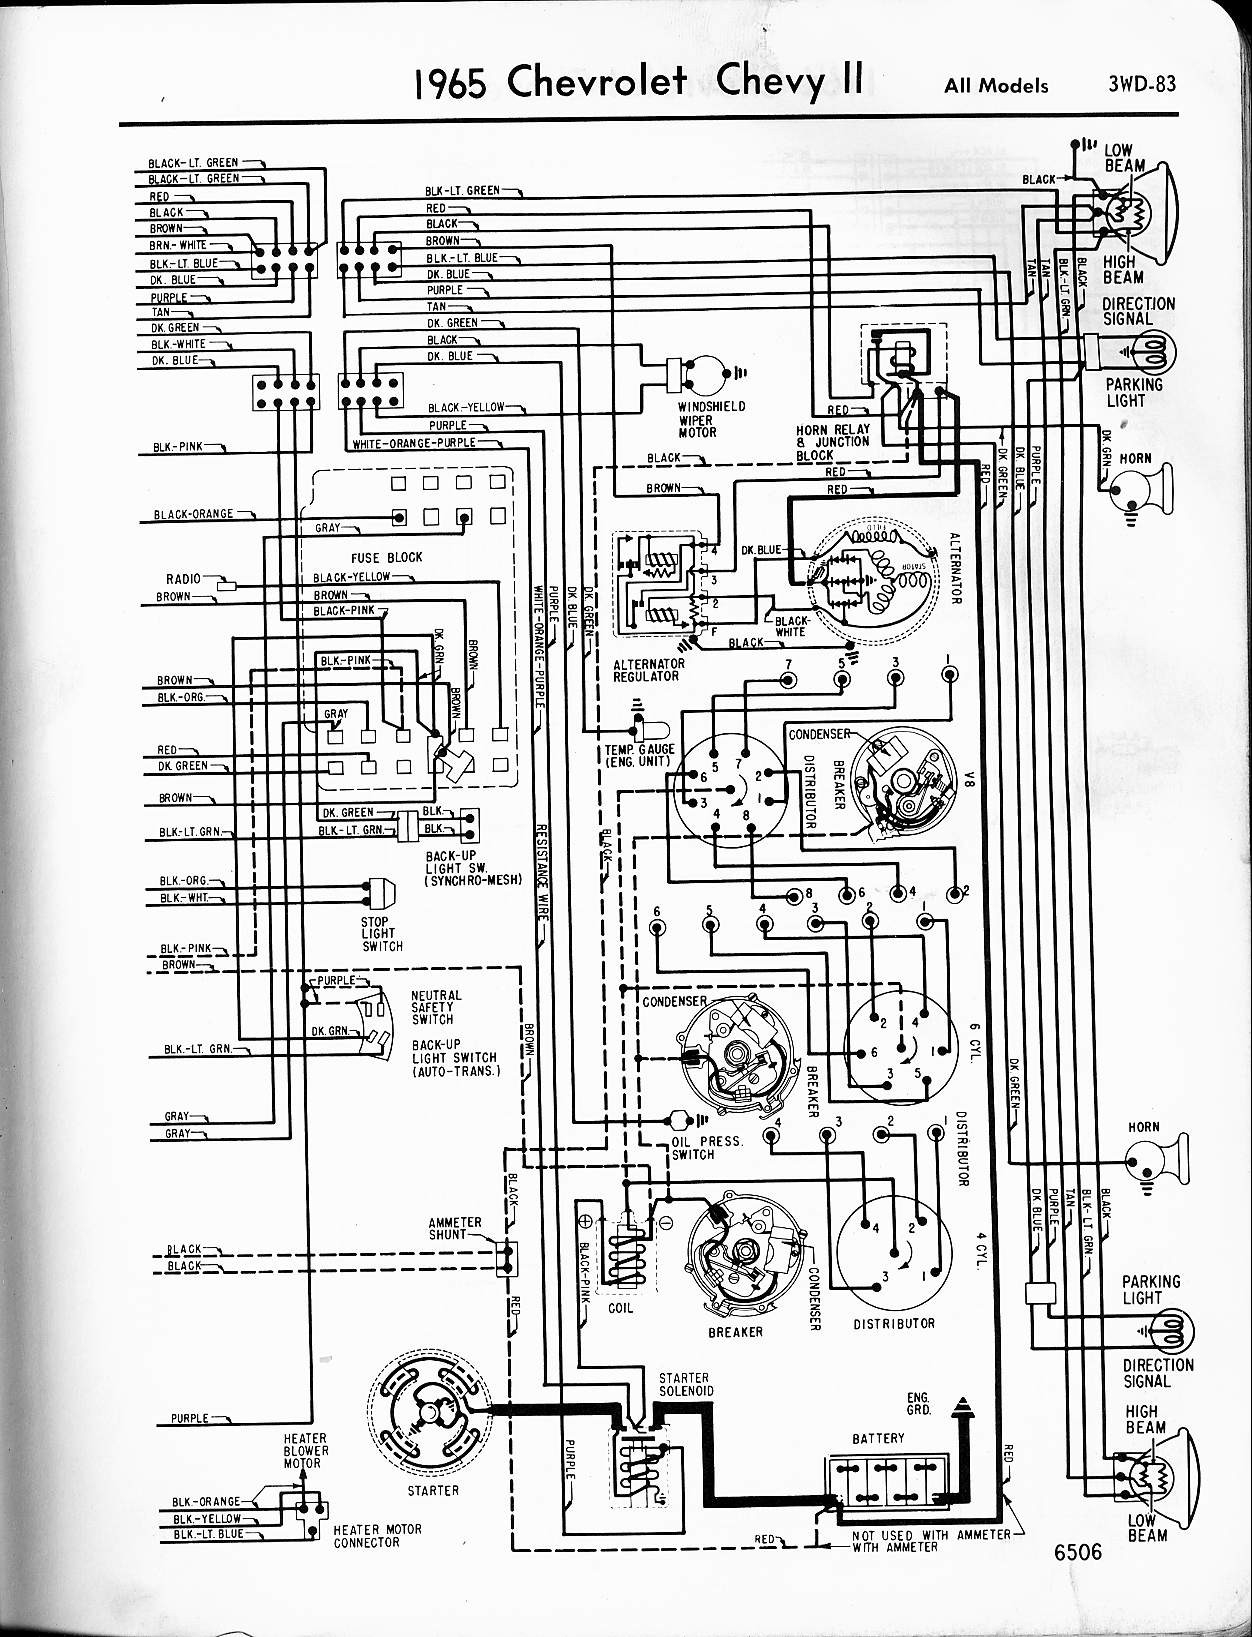 1965 Chevy Pickup Wiring Diagram Free Picture Diy Enthusiasts 1963 Truck C10 Elegant Image Rh Mainetreasurechest Com 1962